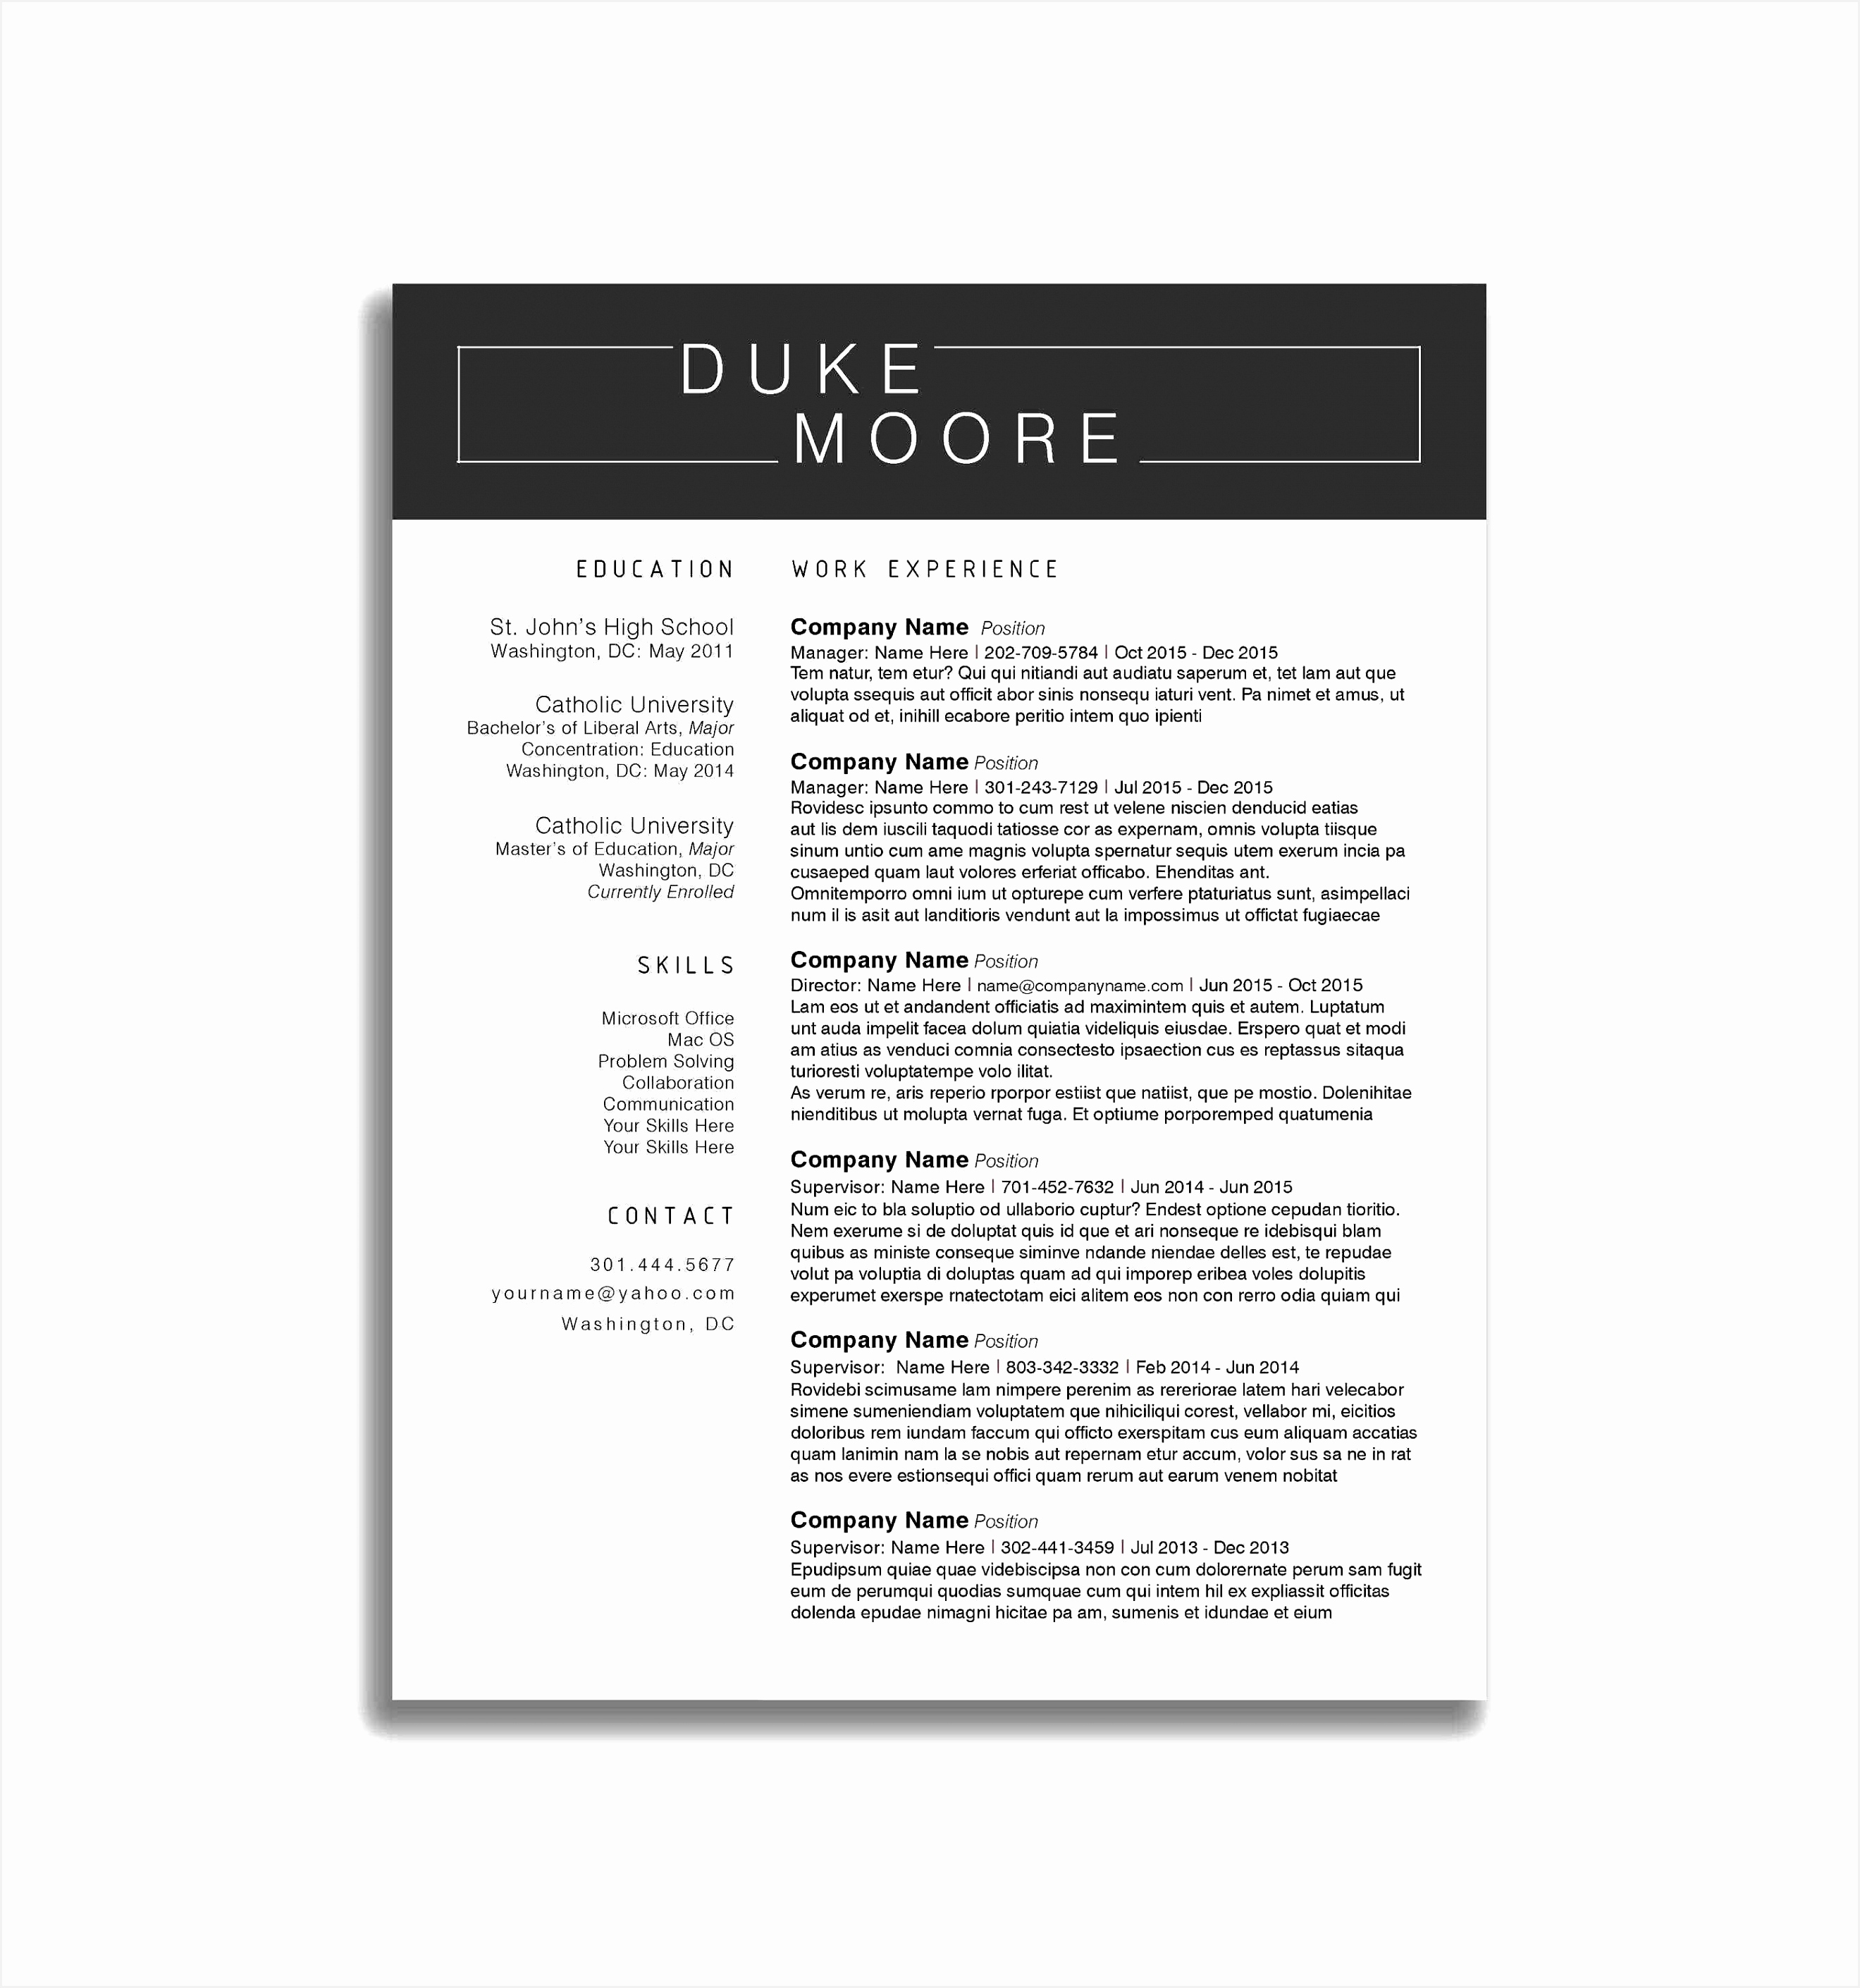 Resume Outline for High School Students Sample Resume Dos and Don039ts for High School Students Typical 282026394wmjw